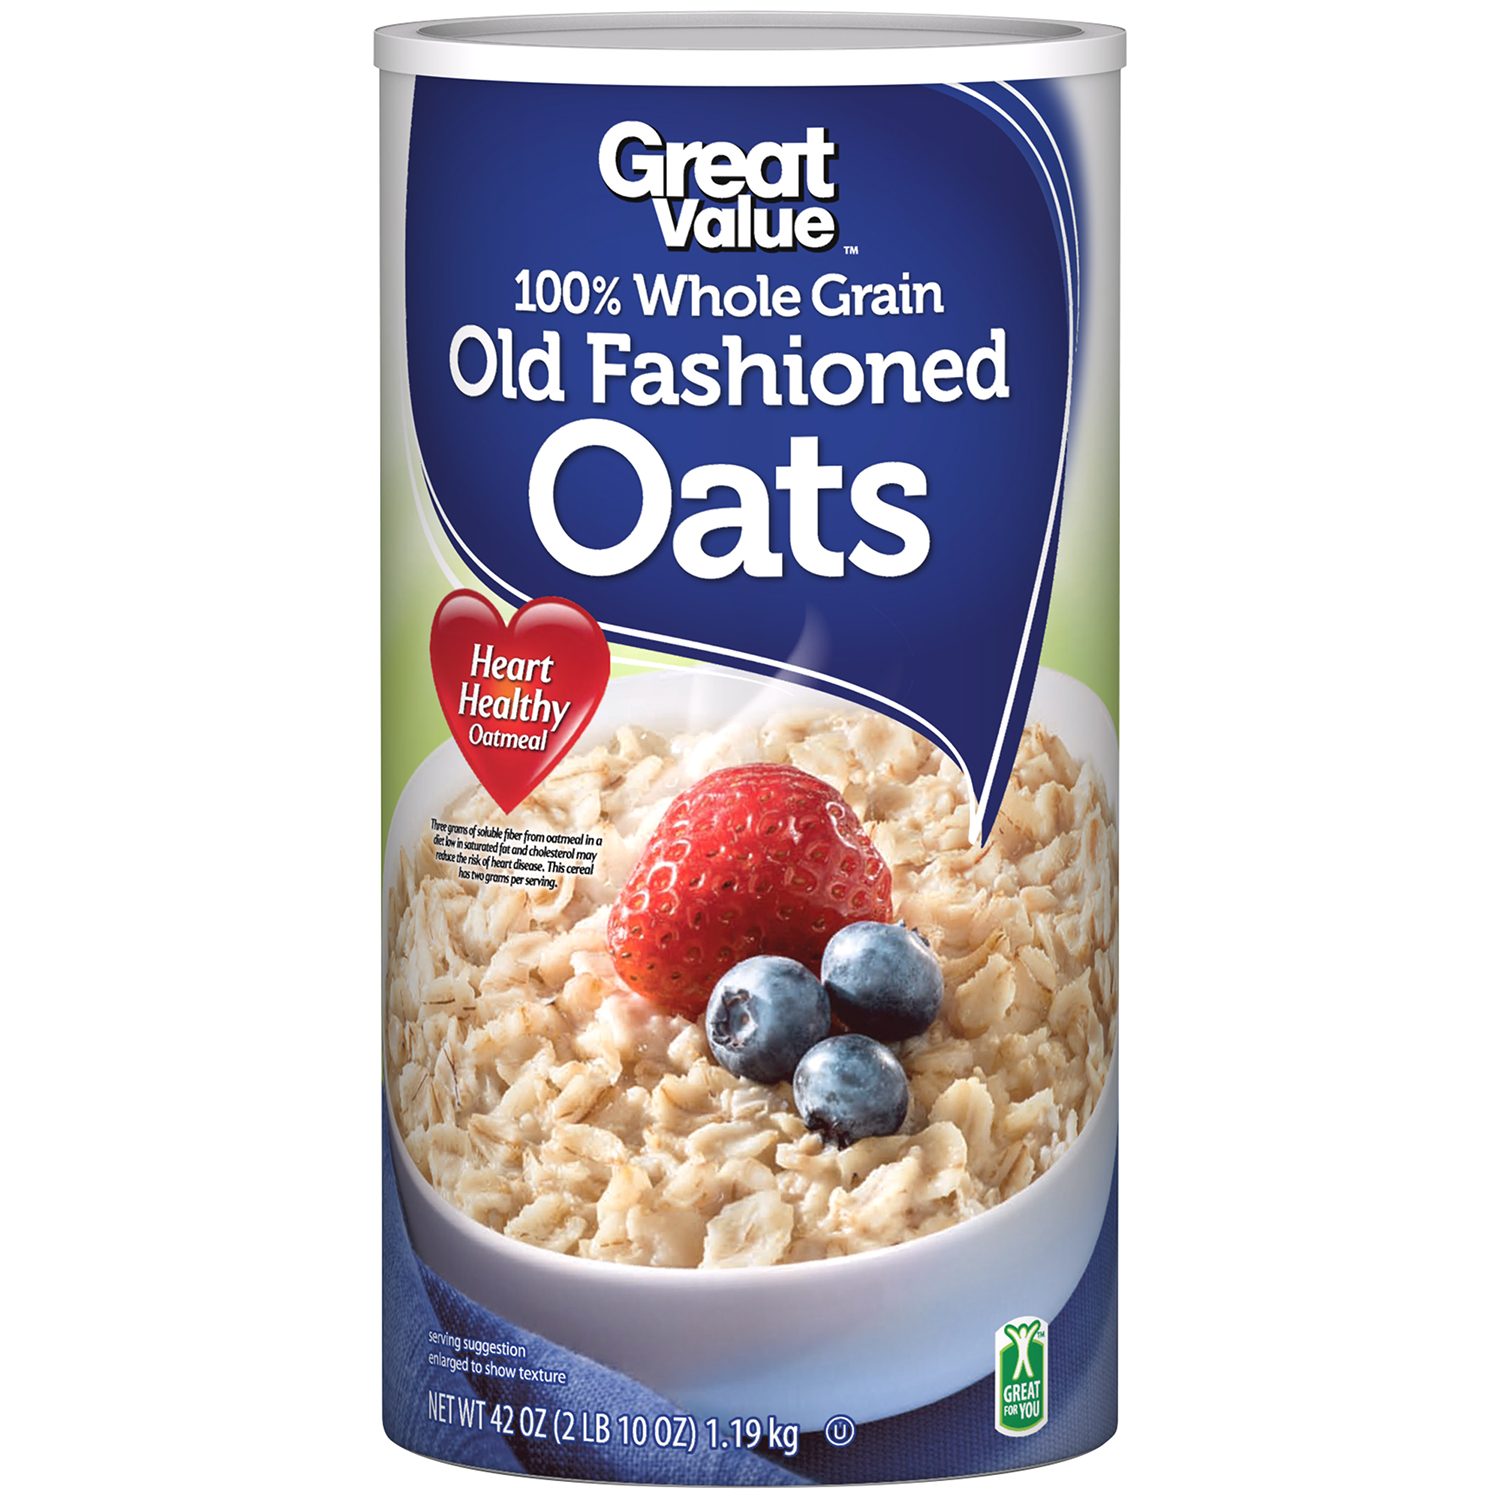 Great Value™ 100% Whole Grain Old Fashioned Oats 42 oz. Canister